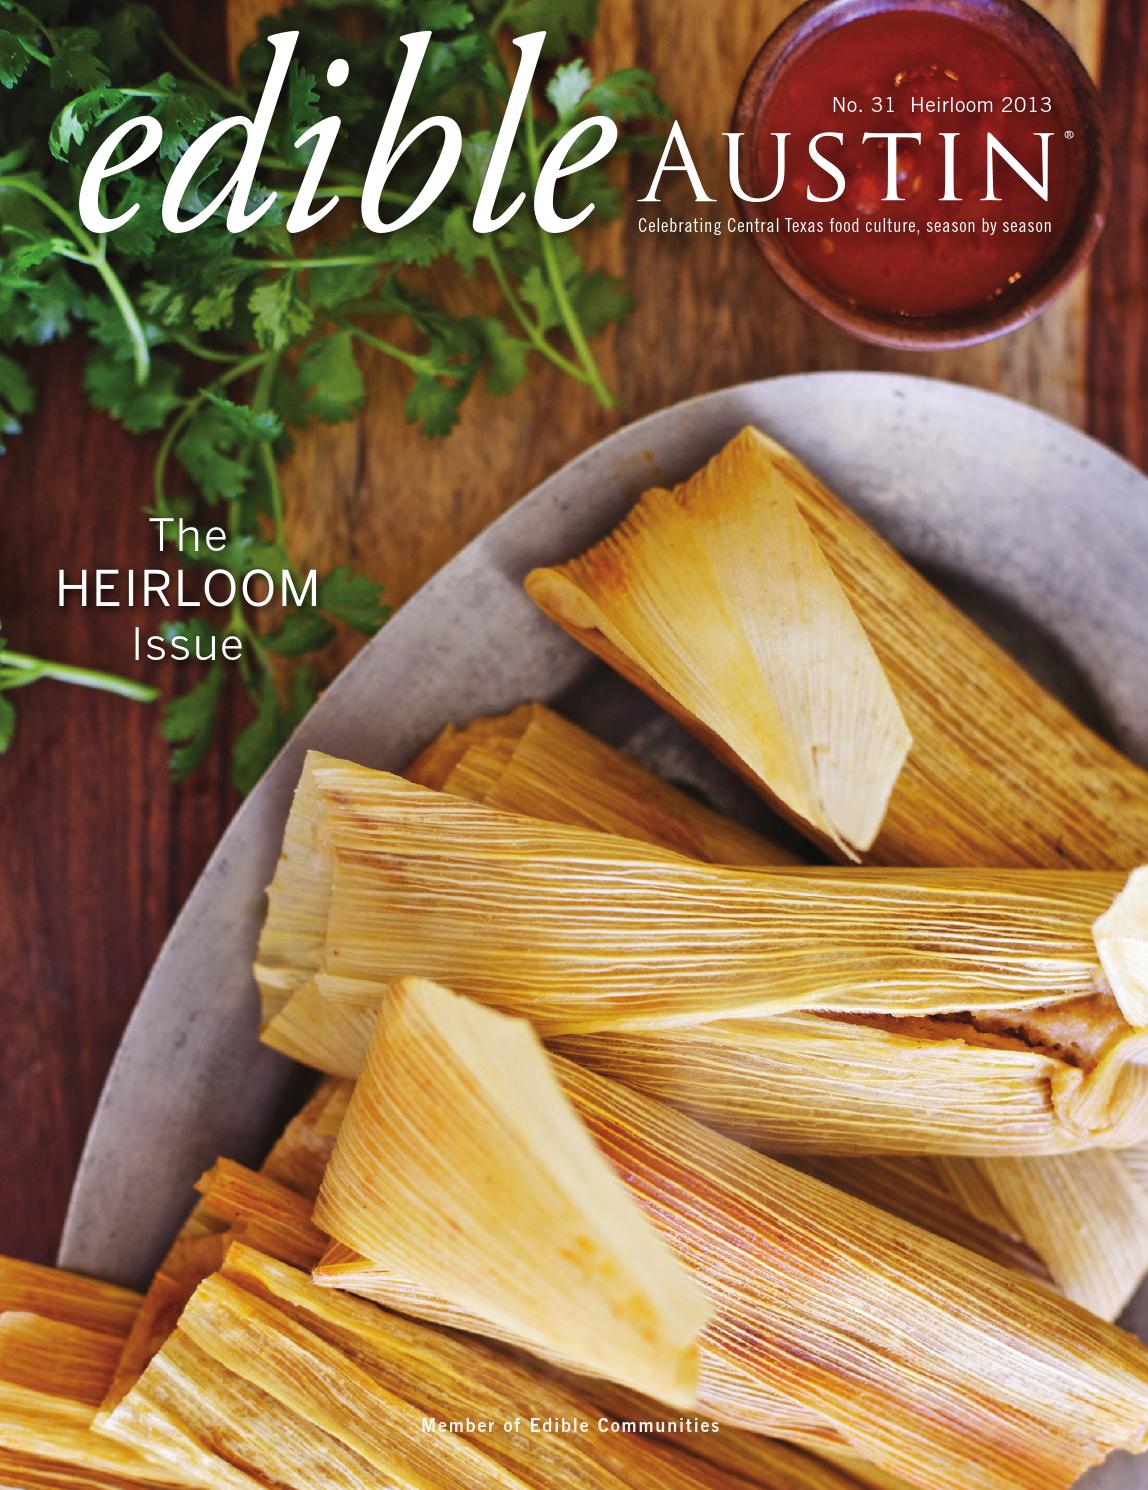 Edible Austin Heirloom Issue 2013 by Edible Austin - issuu